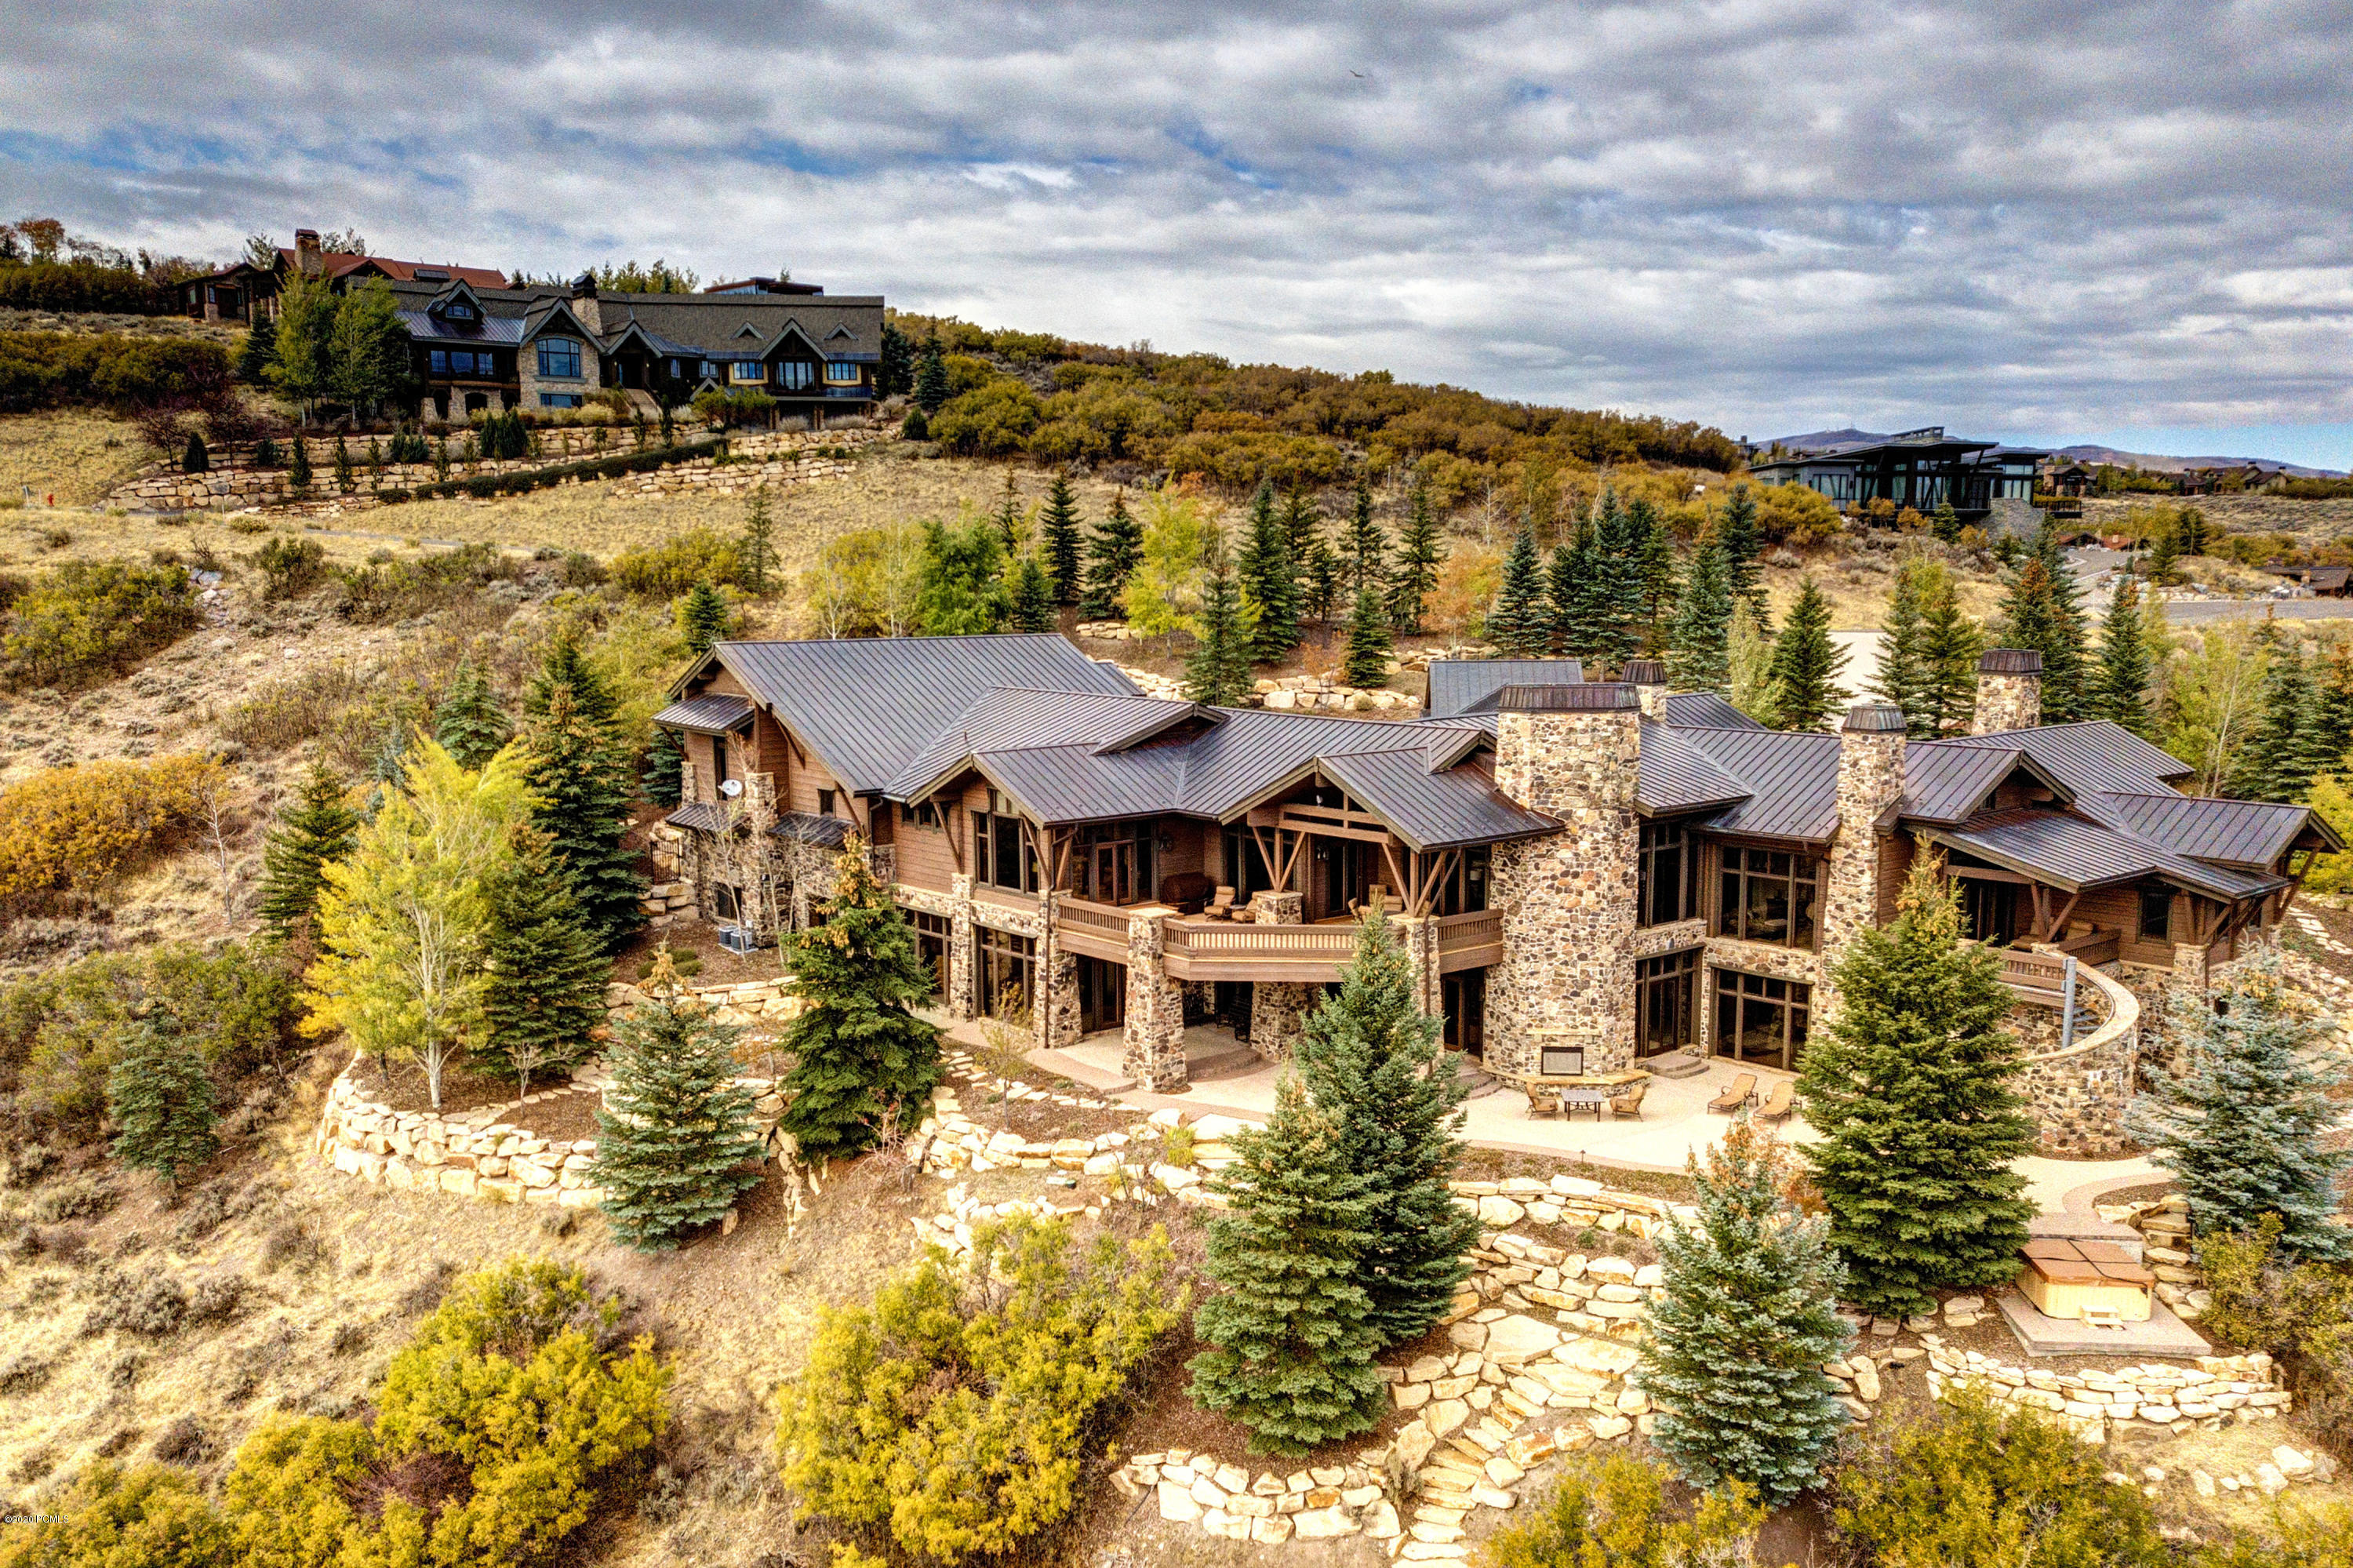 8066 Sunrise Loop, Park City, Utah 84098, 8 Bedrooms Bedrooms, ,10 BathroomsBathrooms,Single Family,For Sale,Sunrise Loop,11704385